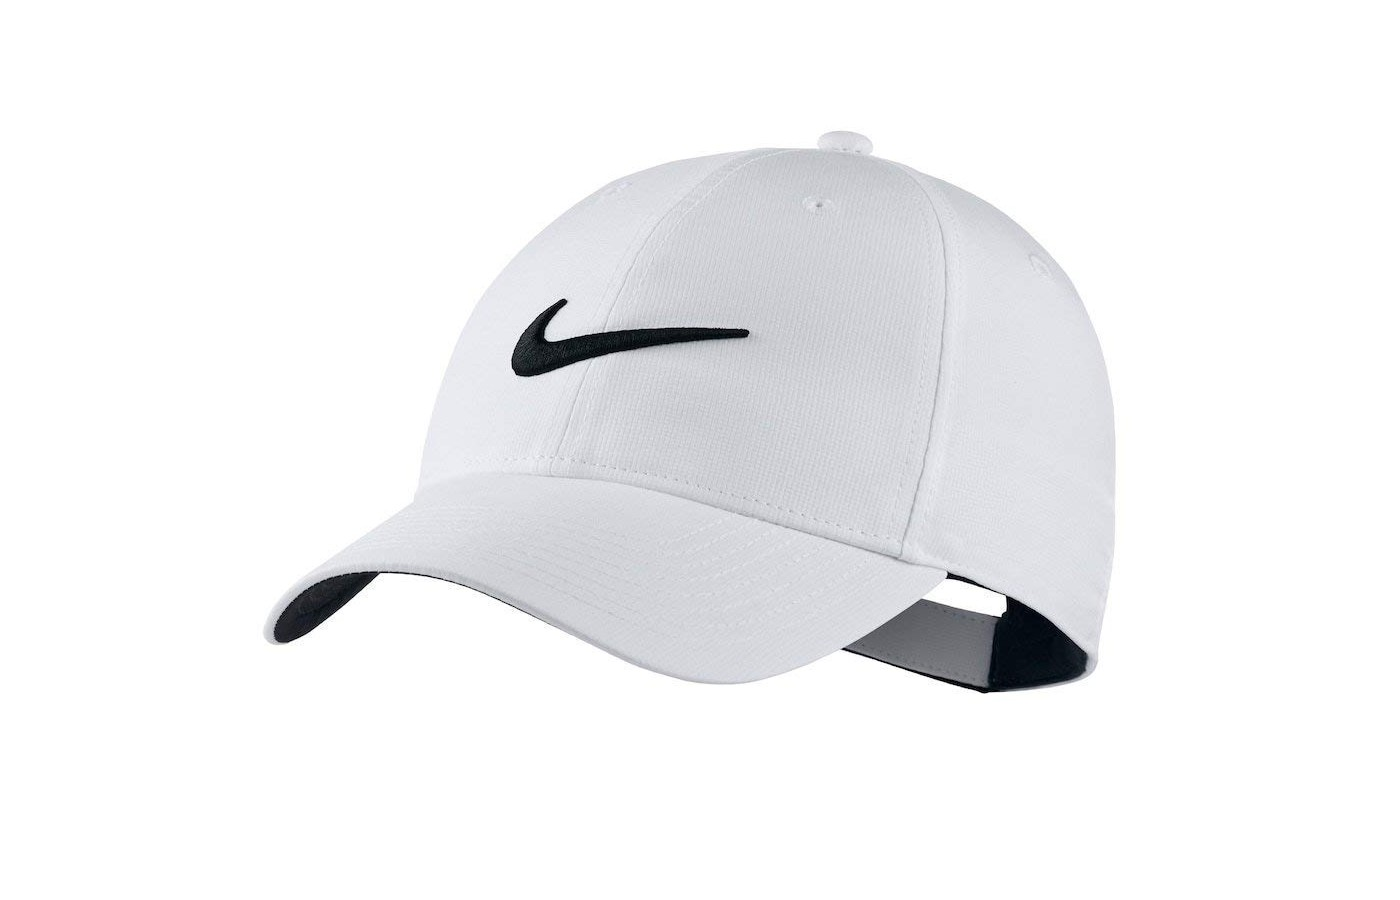 Nike Golf Dri-FIT white